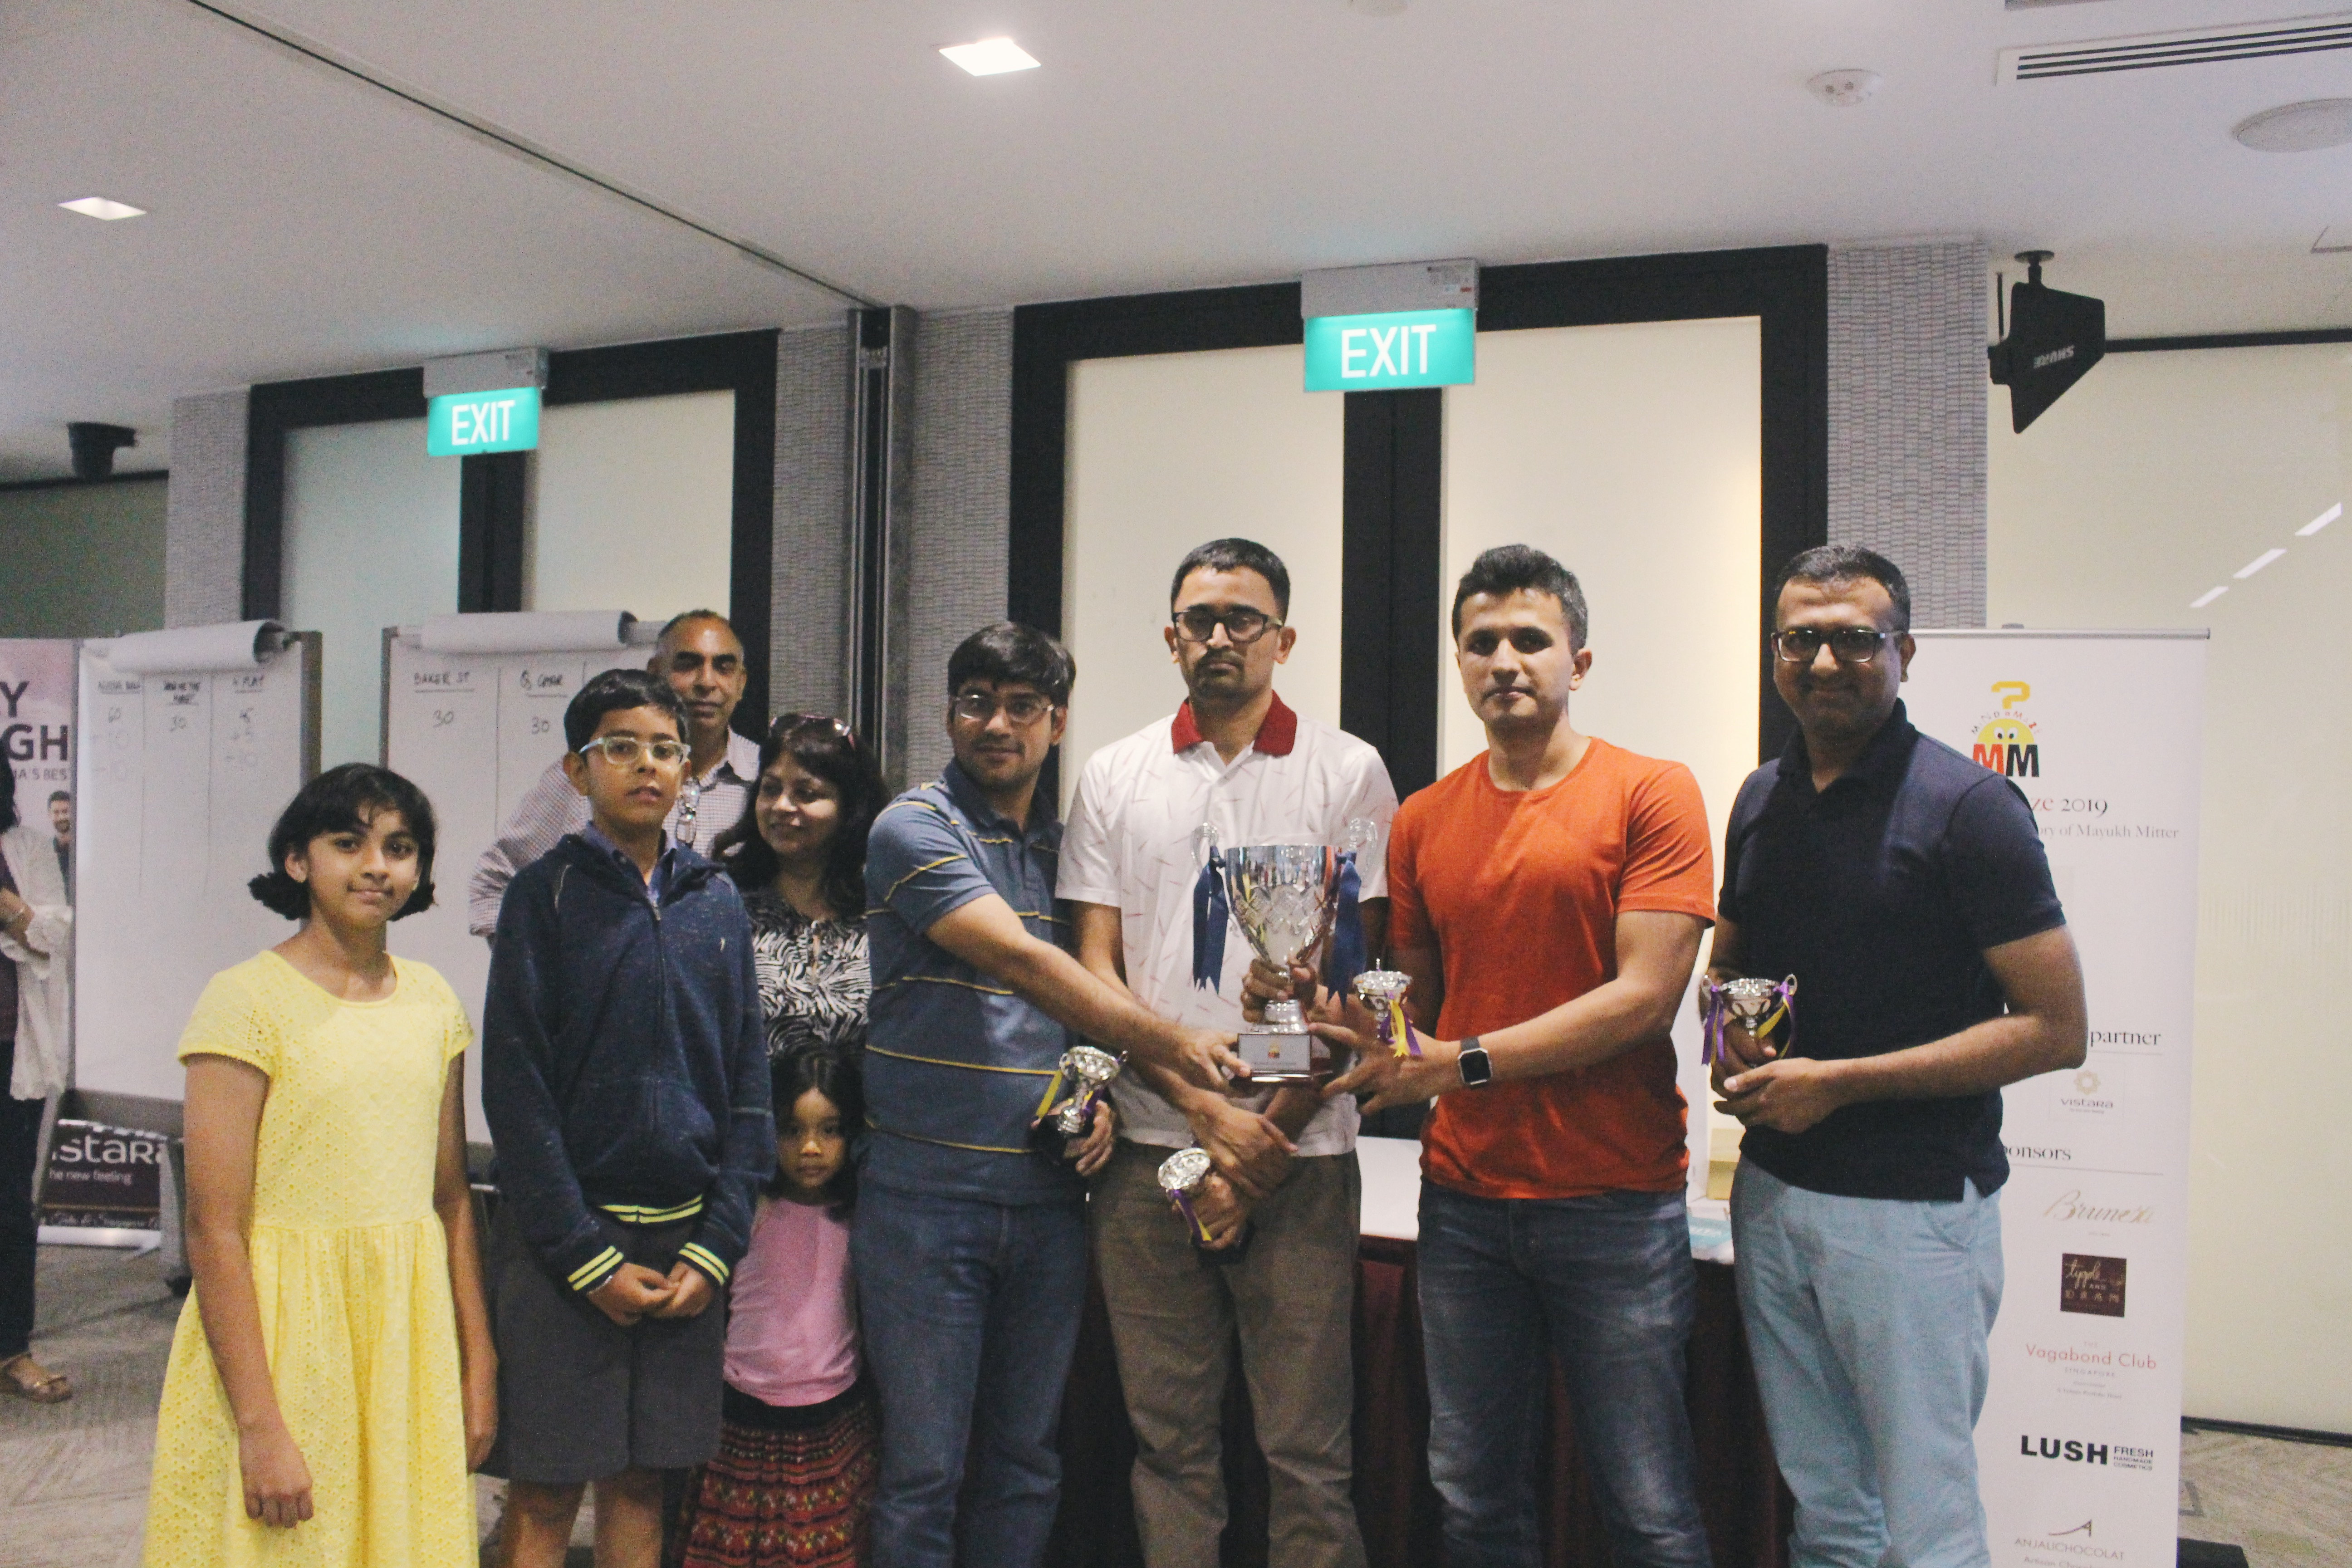 (Third from left) Rohit Brijnath, Straits Times assistant sports editor, Swapna Mitter, and members of Ageing Bulls Aadisht Khanna, Swami Ganesh, Pradeep Ramarathnam, Mukund Sridhar. Photo: Connected to India